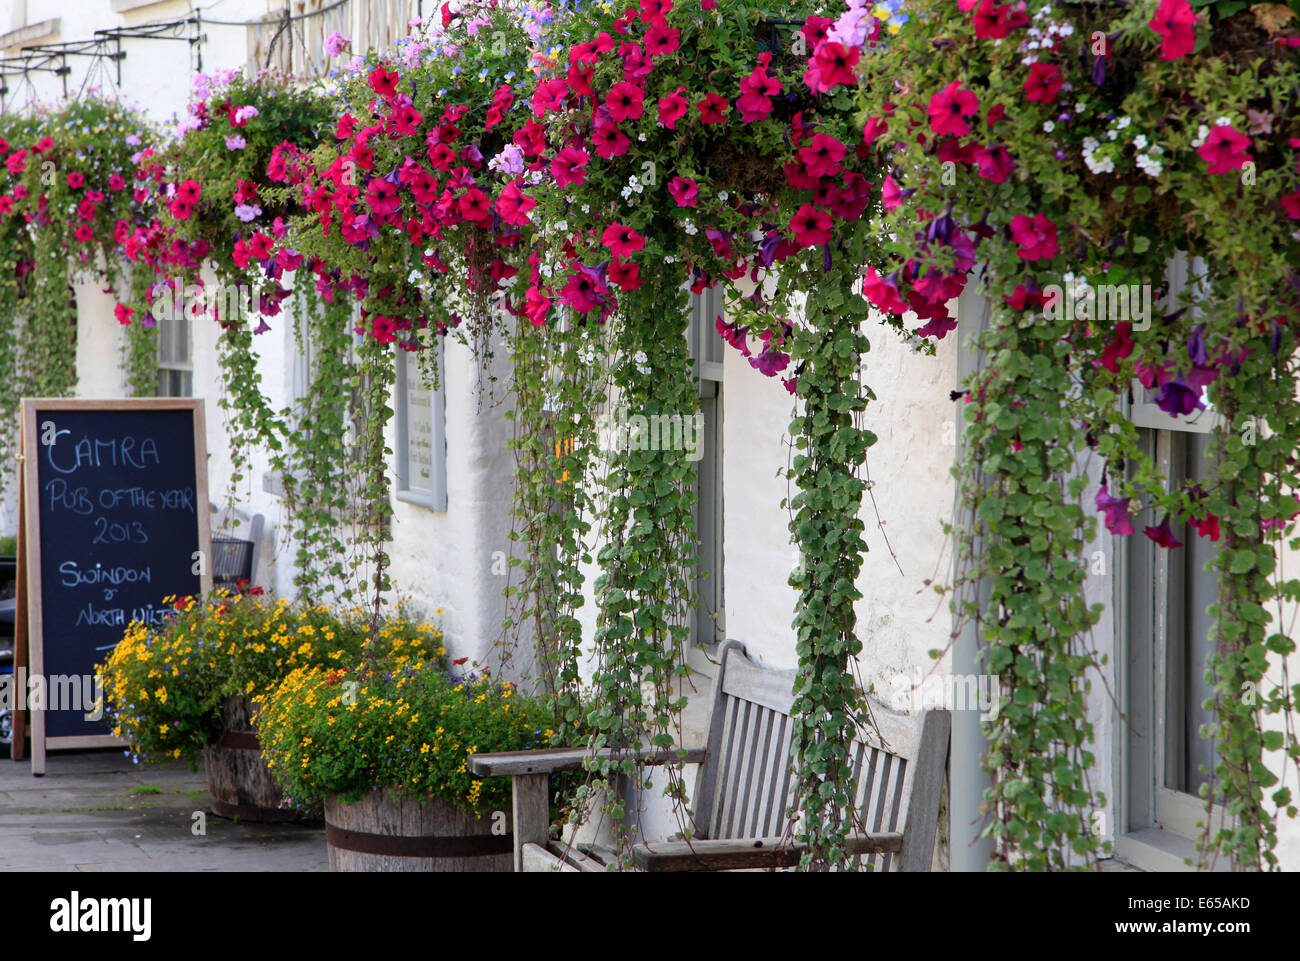 A row of hanging baskets at The Red Lion pub in Cricklade in the Wiltshire Cotswolds, England. - Stock Image